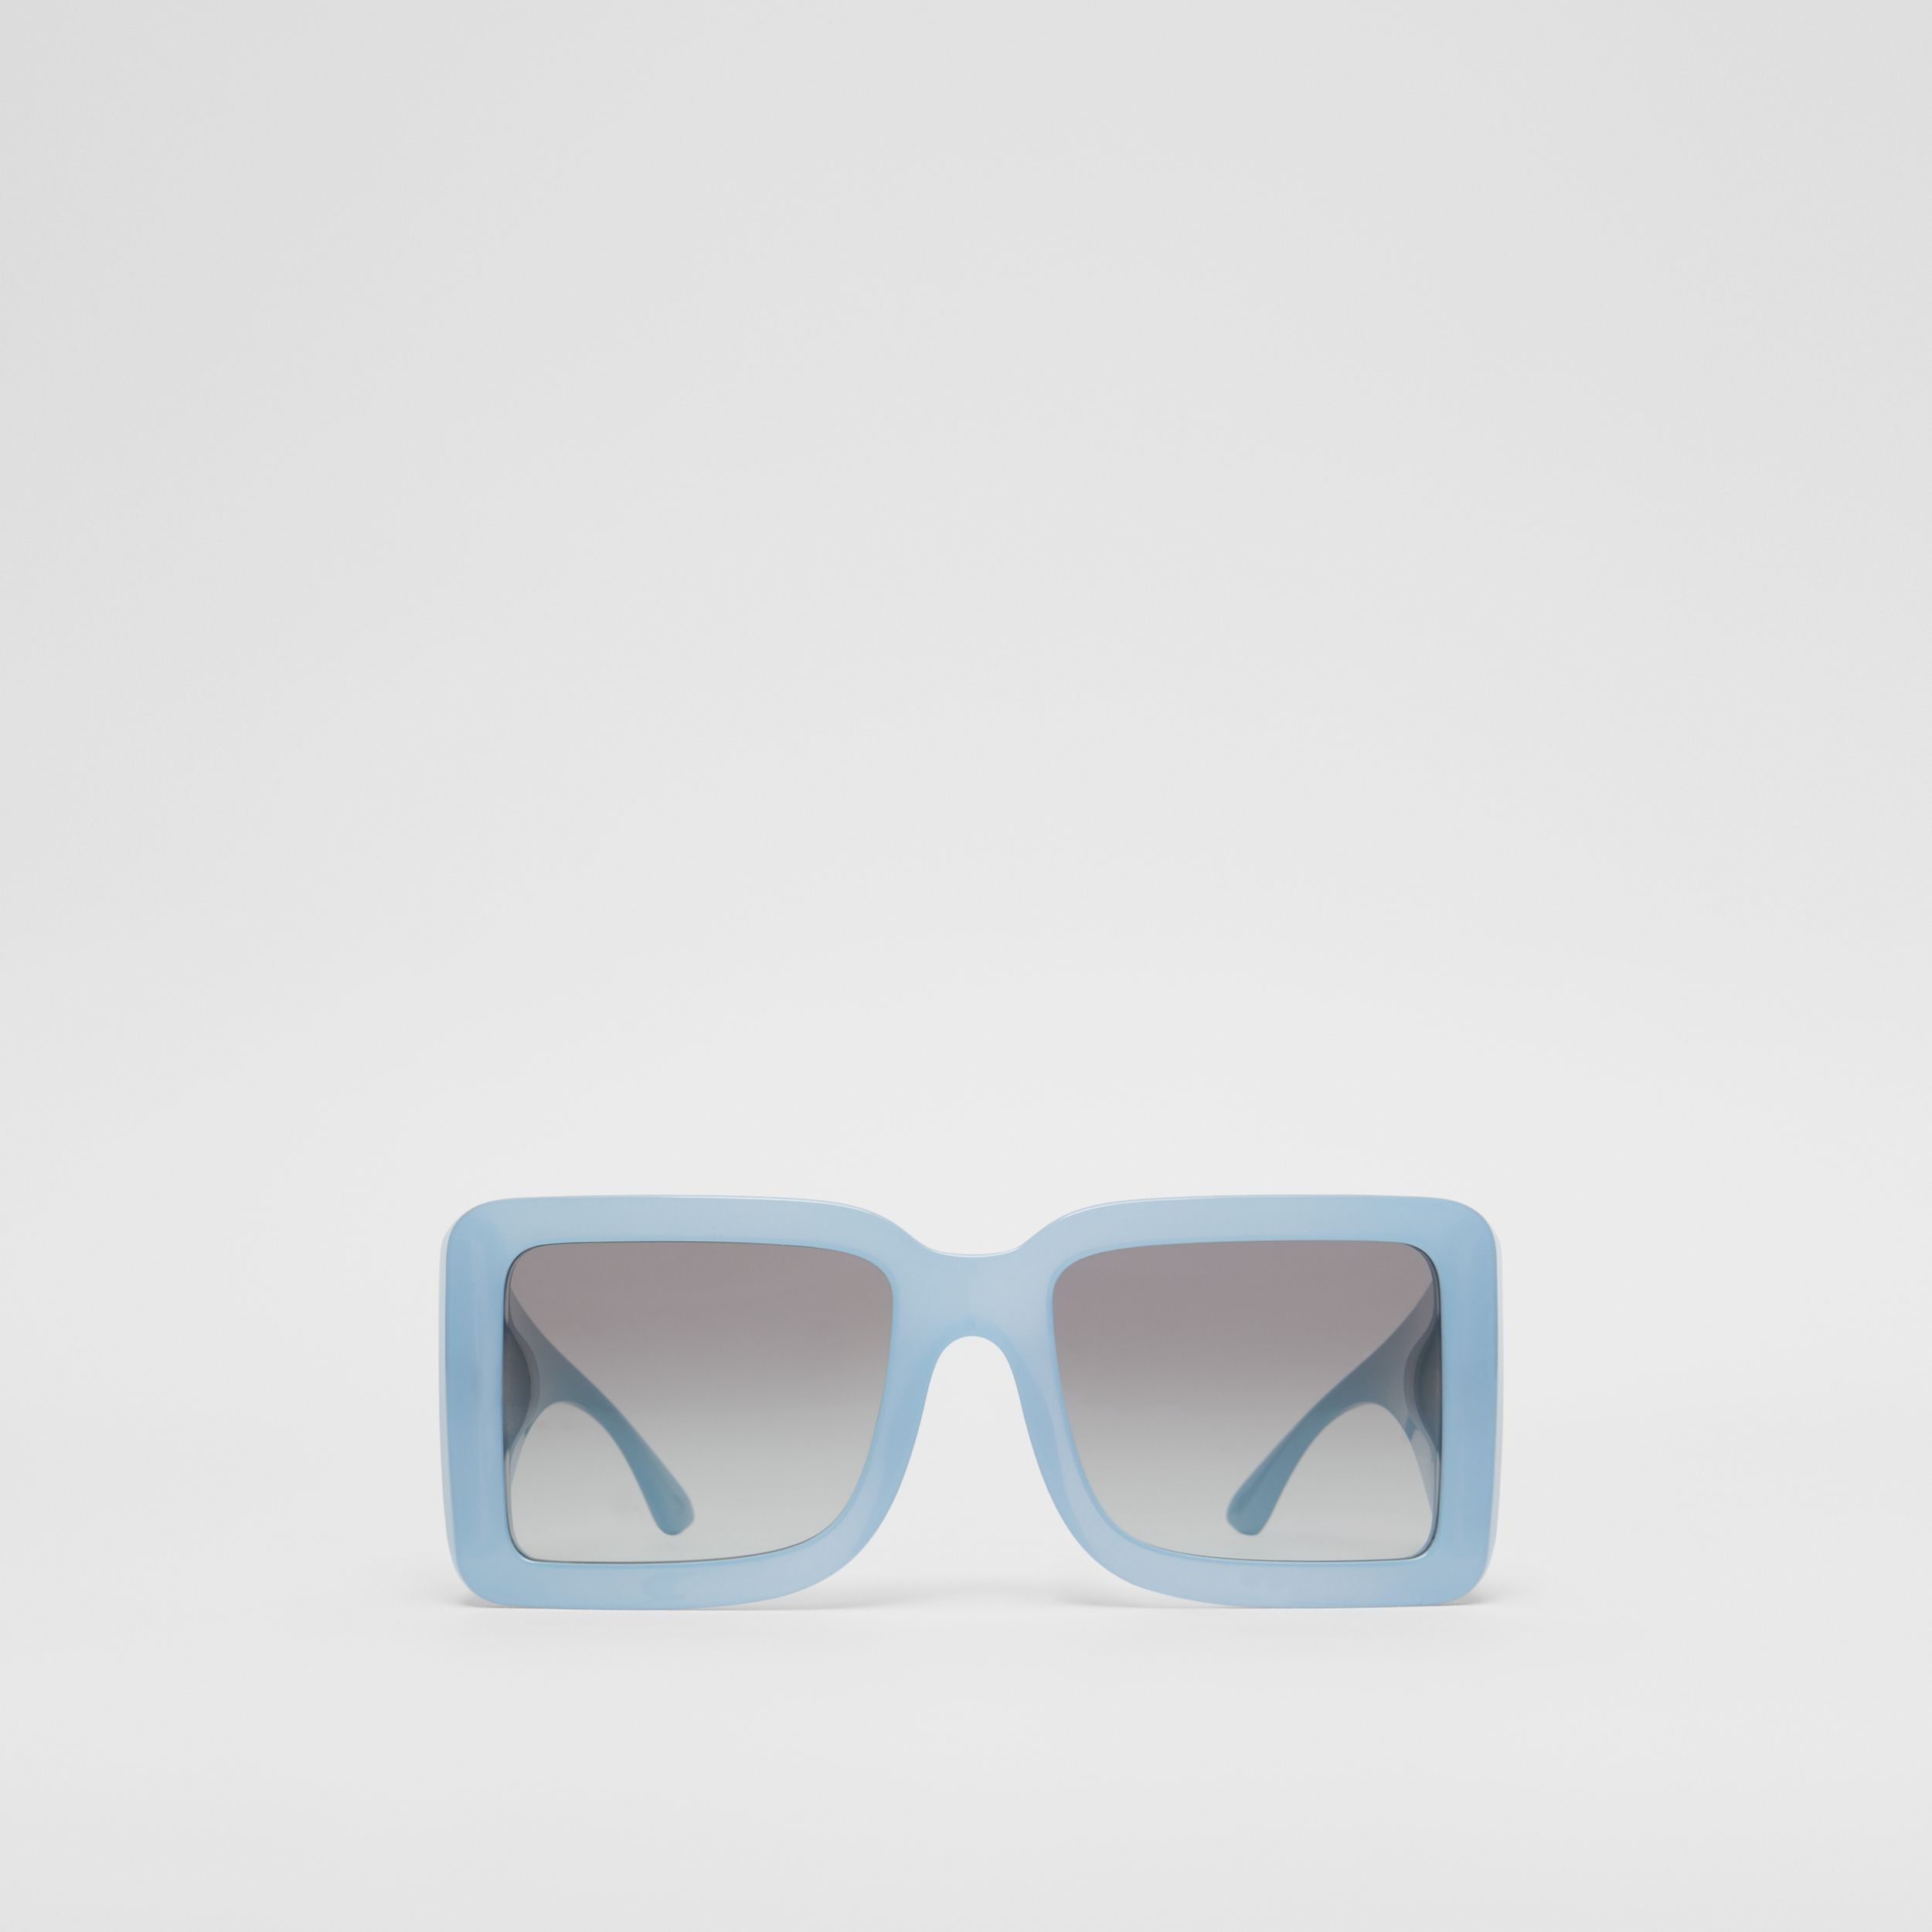 B Motif Square Frame Sunglasses in Baby Blue | Burberry - 1